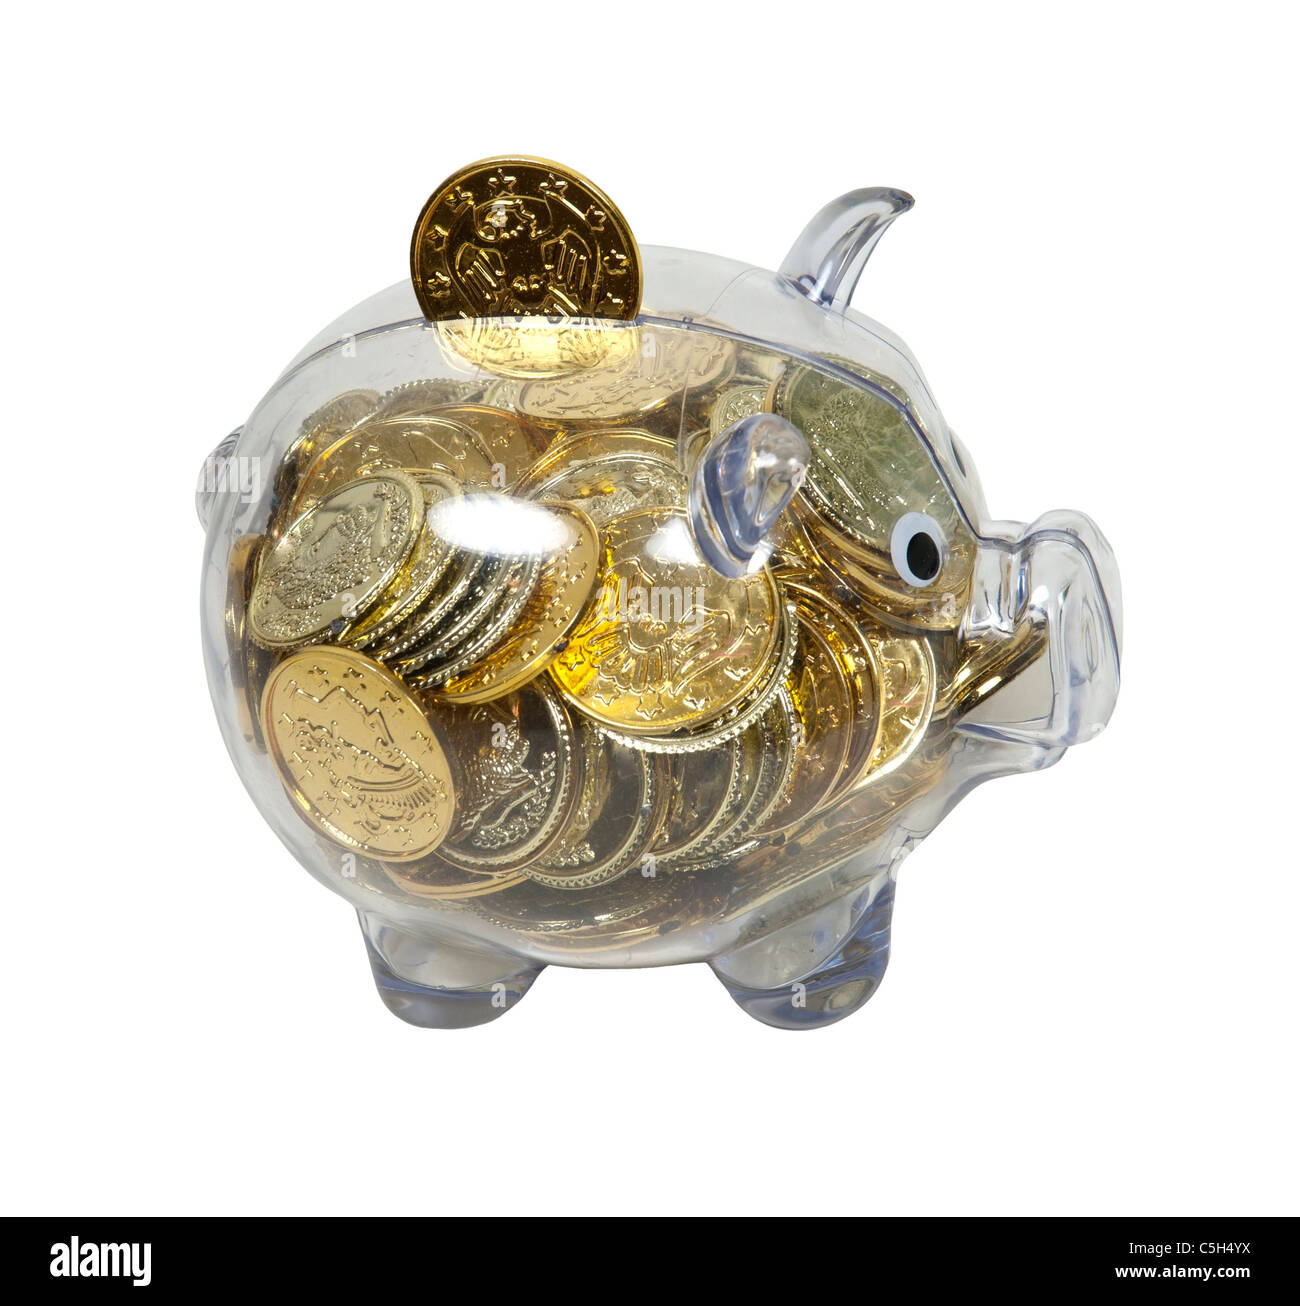 Piggy bank used to save change for a future purchase filled with gold coins - path included - Stock Image